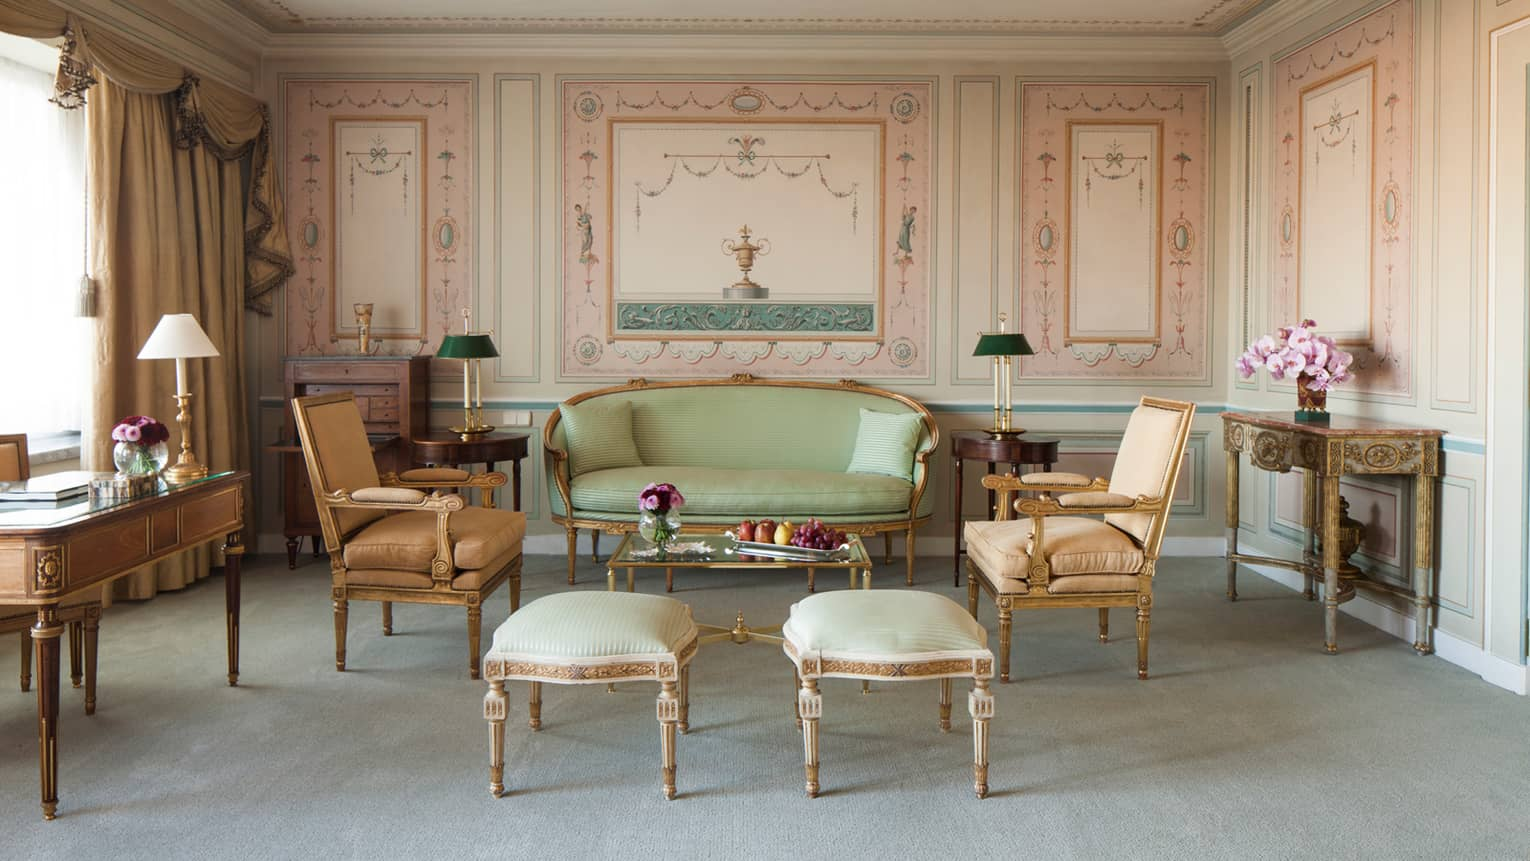 Foundation Suite living room with painted antique-style wall panels, antique furniture with gold trim